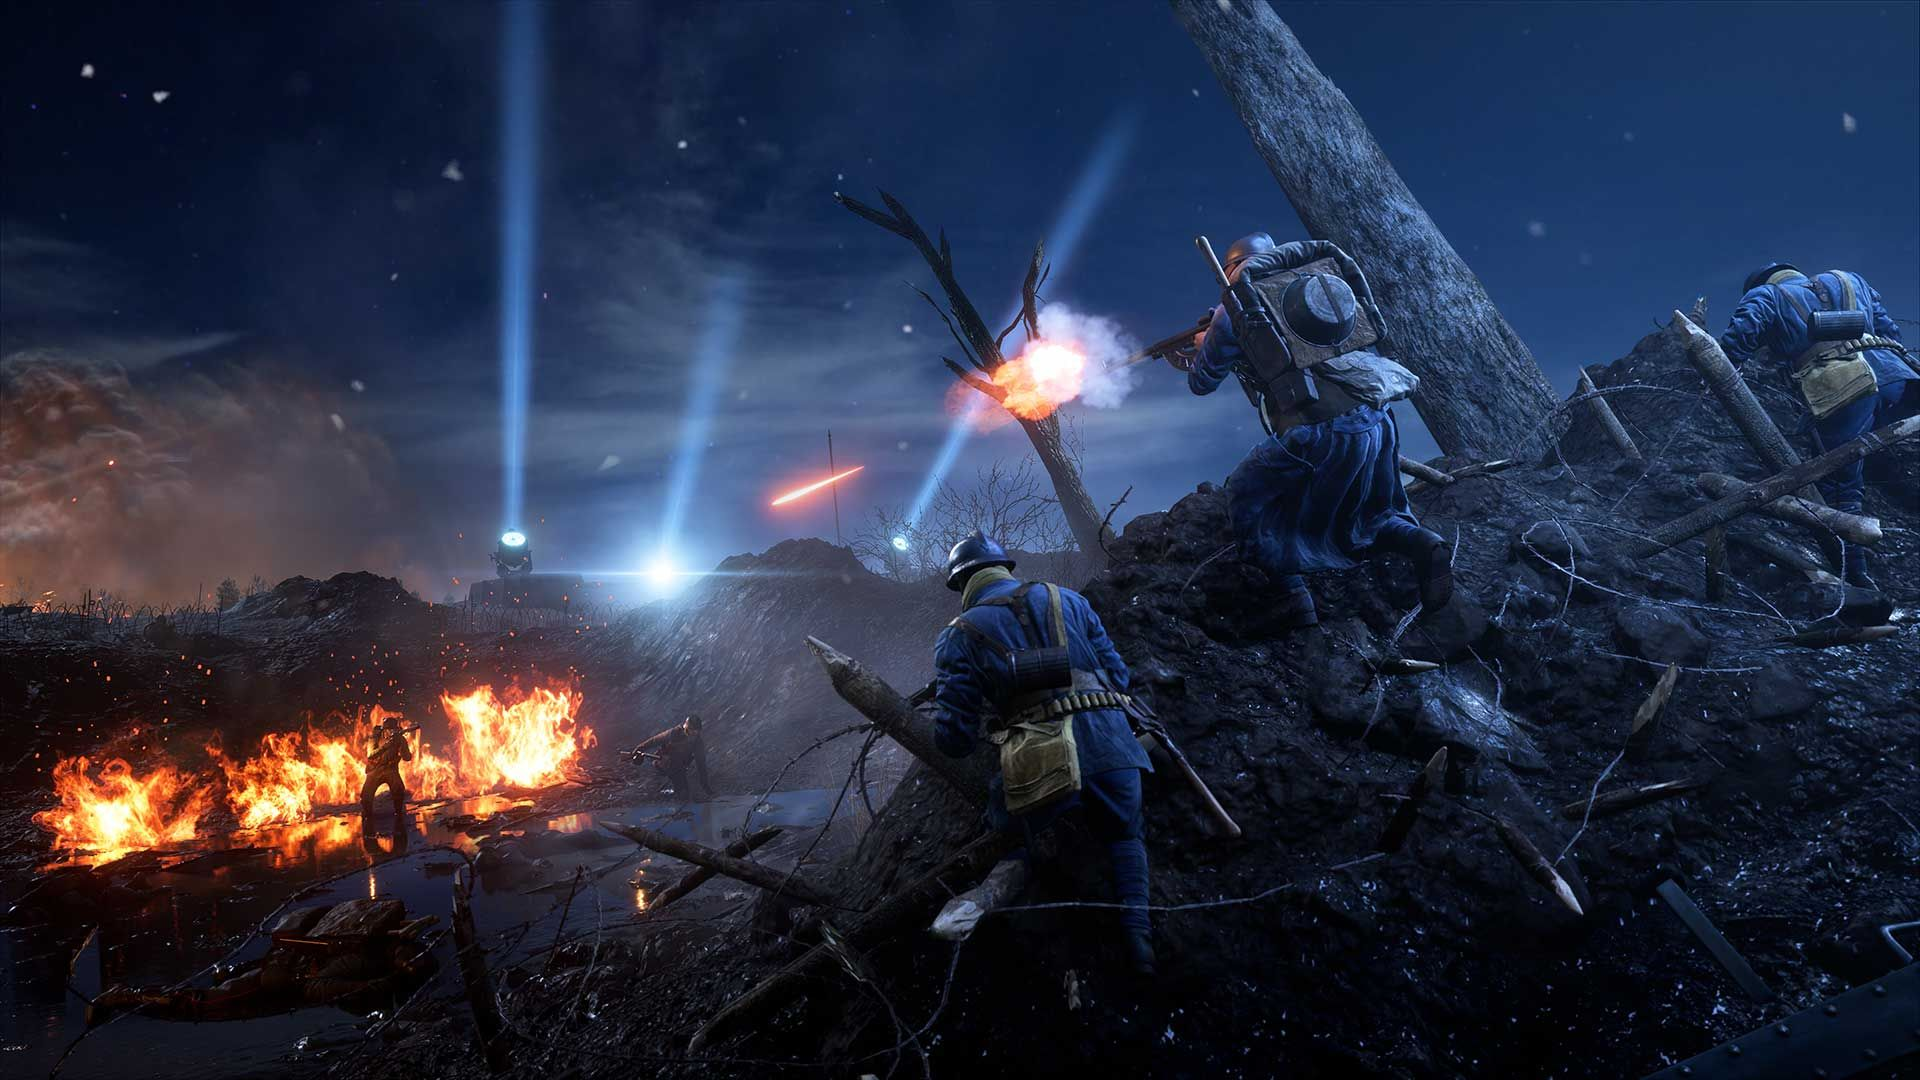 This year's Battlefield is rumored to be set during World War 2